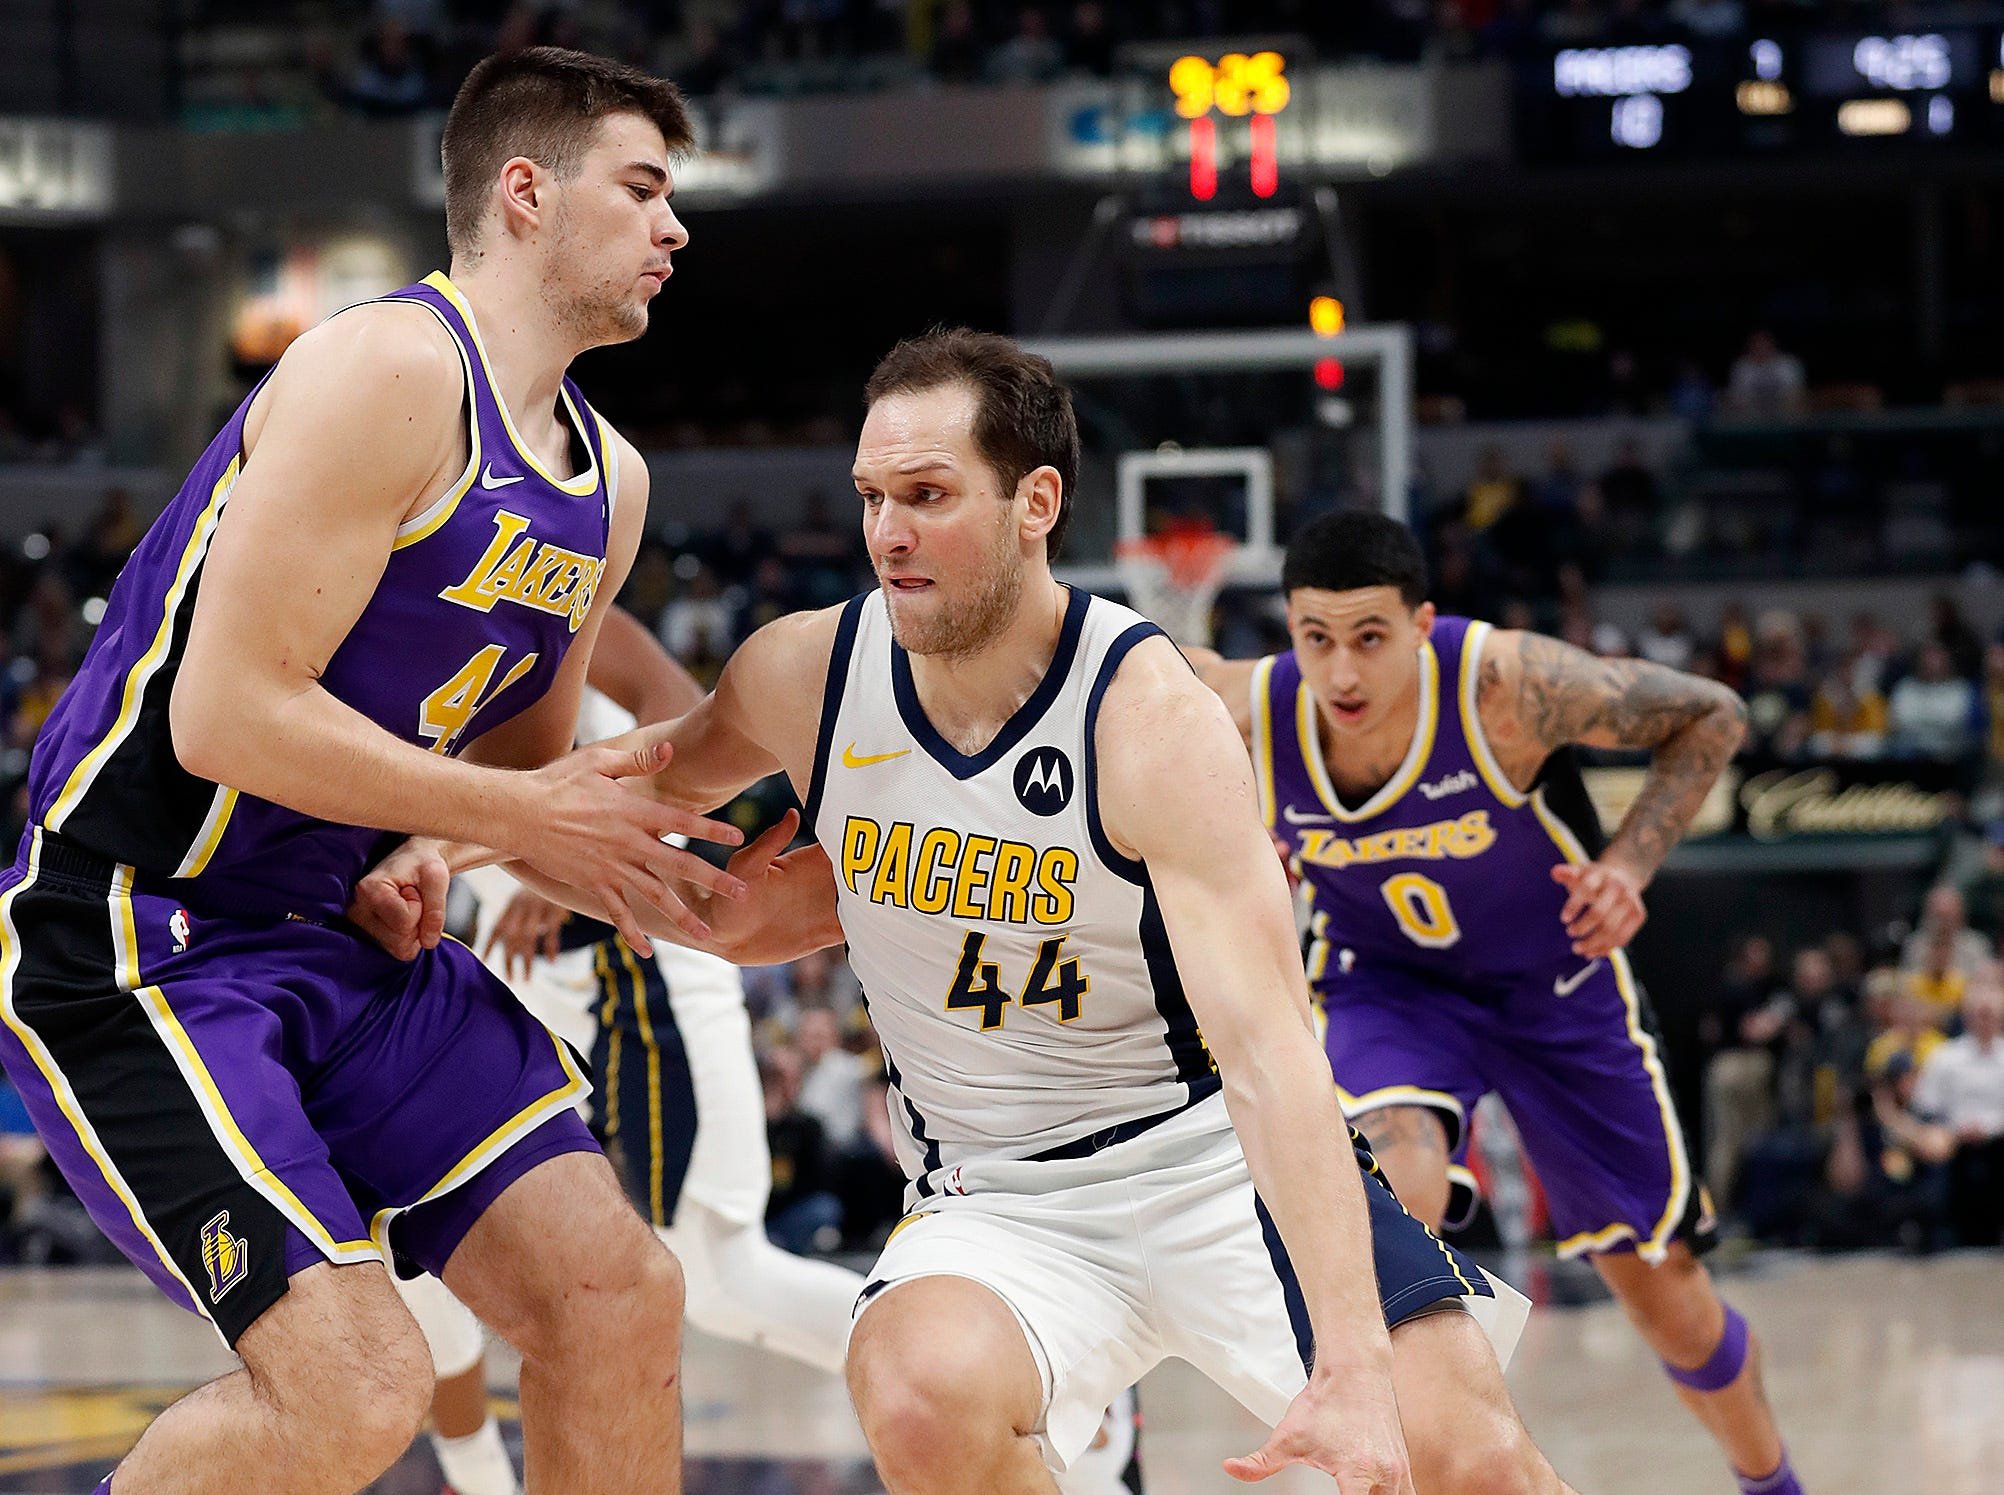 Indiana Pacers forward Bojan Bogdanovic (44) drives on Los Angeles Lakers center Ivica Zubac (40) in the first half of their game at Bankers Life Fieldhouse on Tuesday, Feb. 5, 2019.